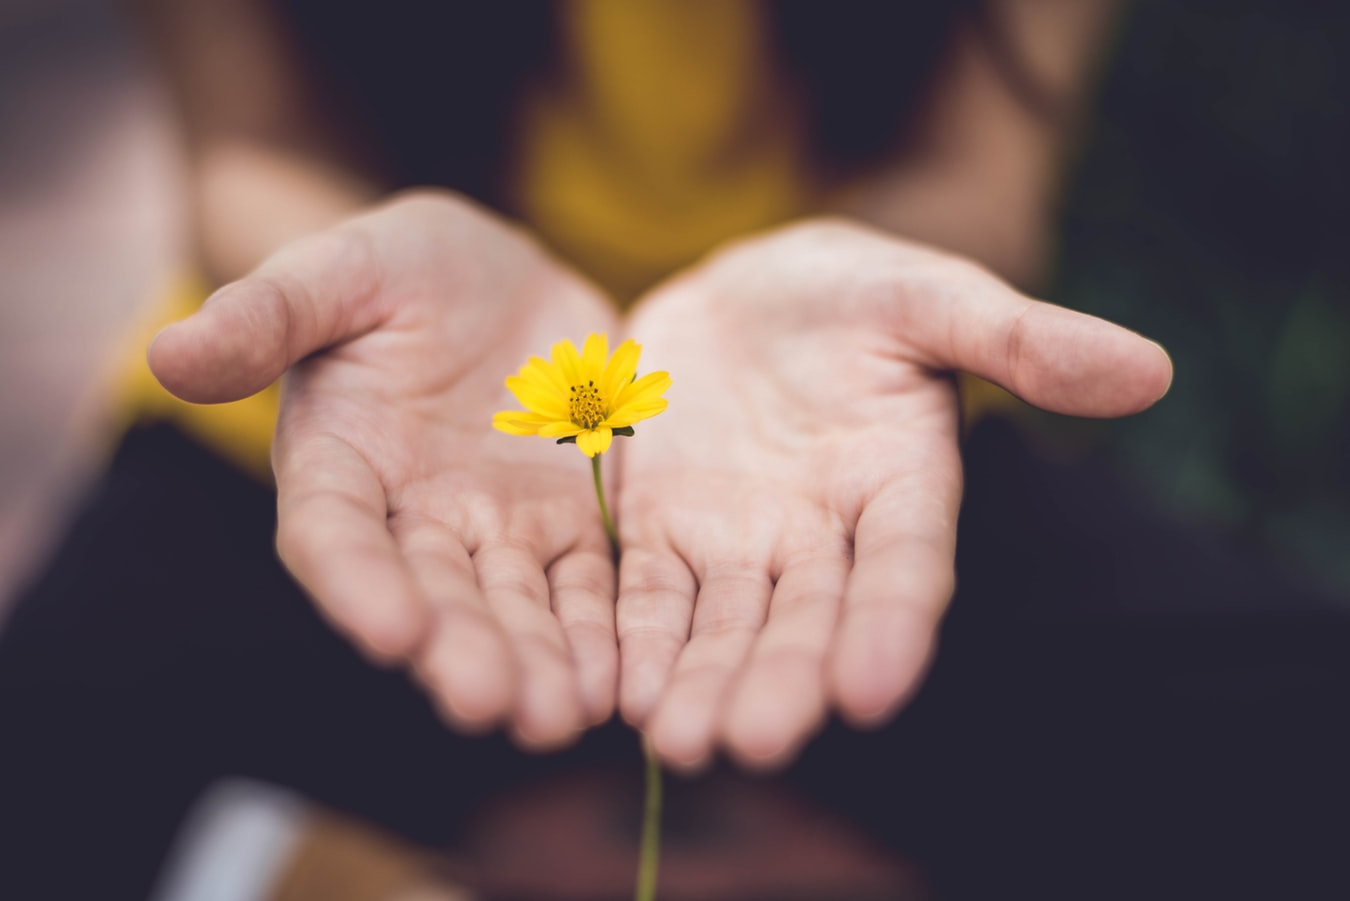 A closeup of a woman holding a yellow flower in her hands.